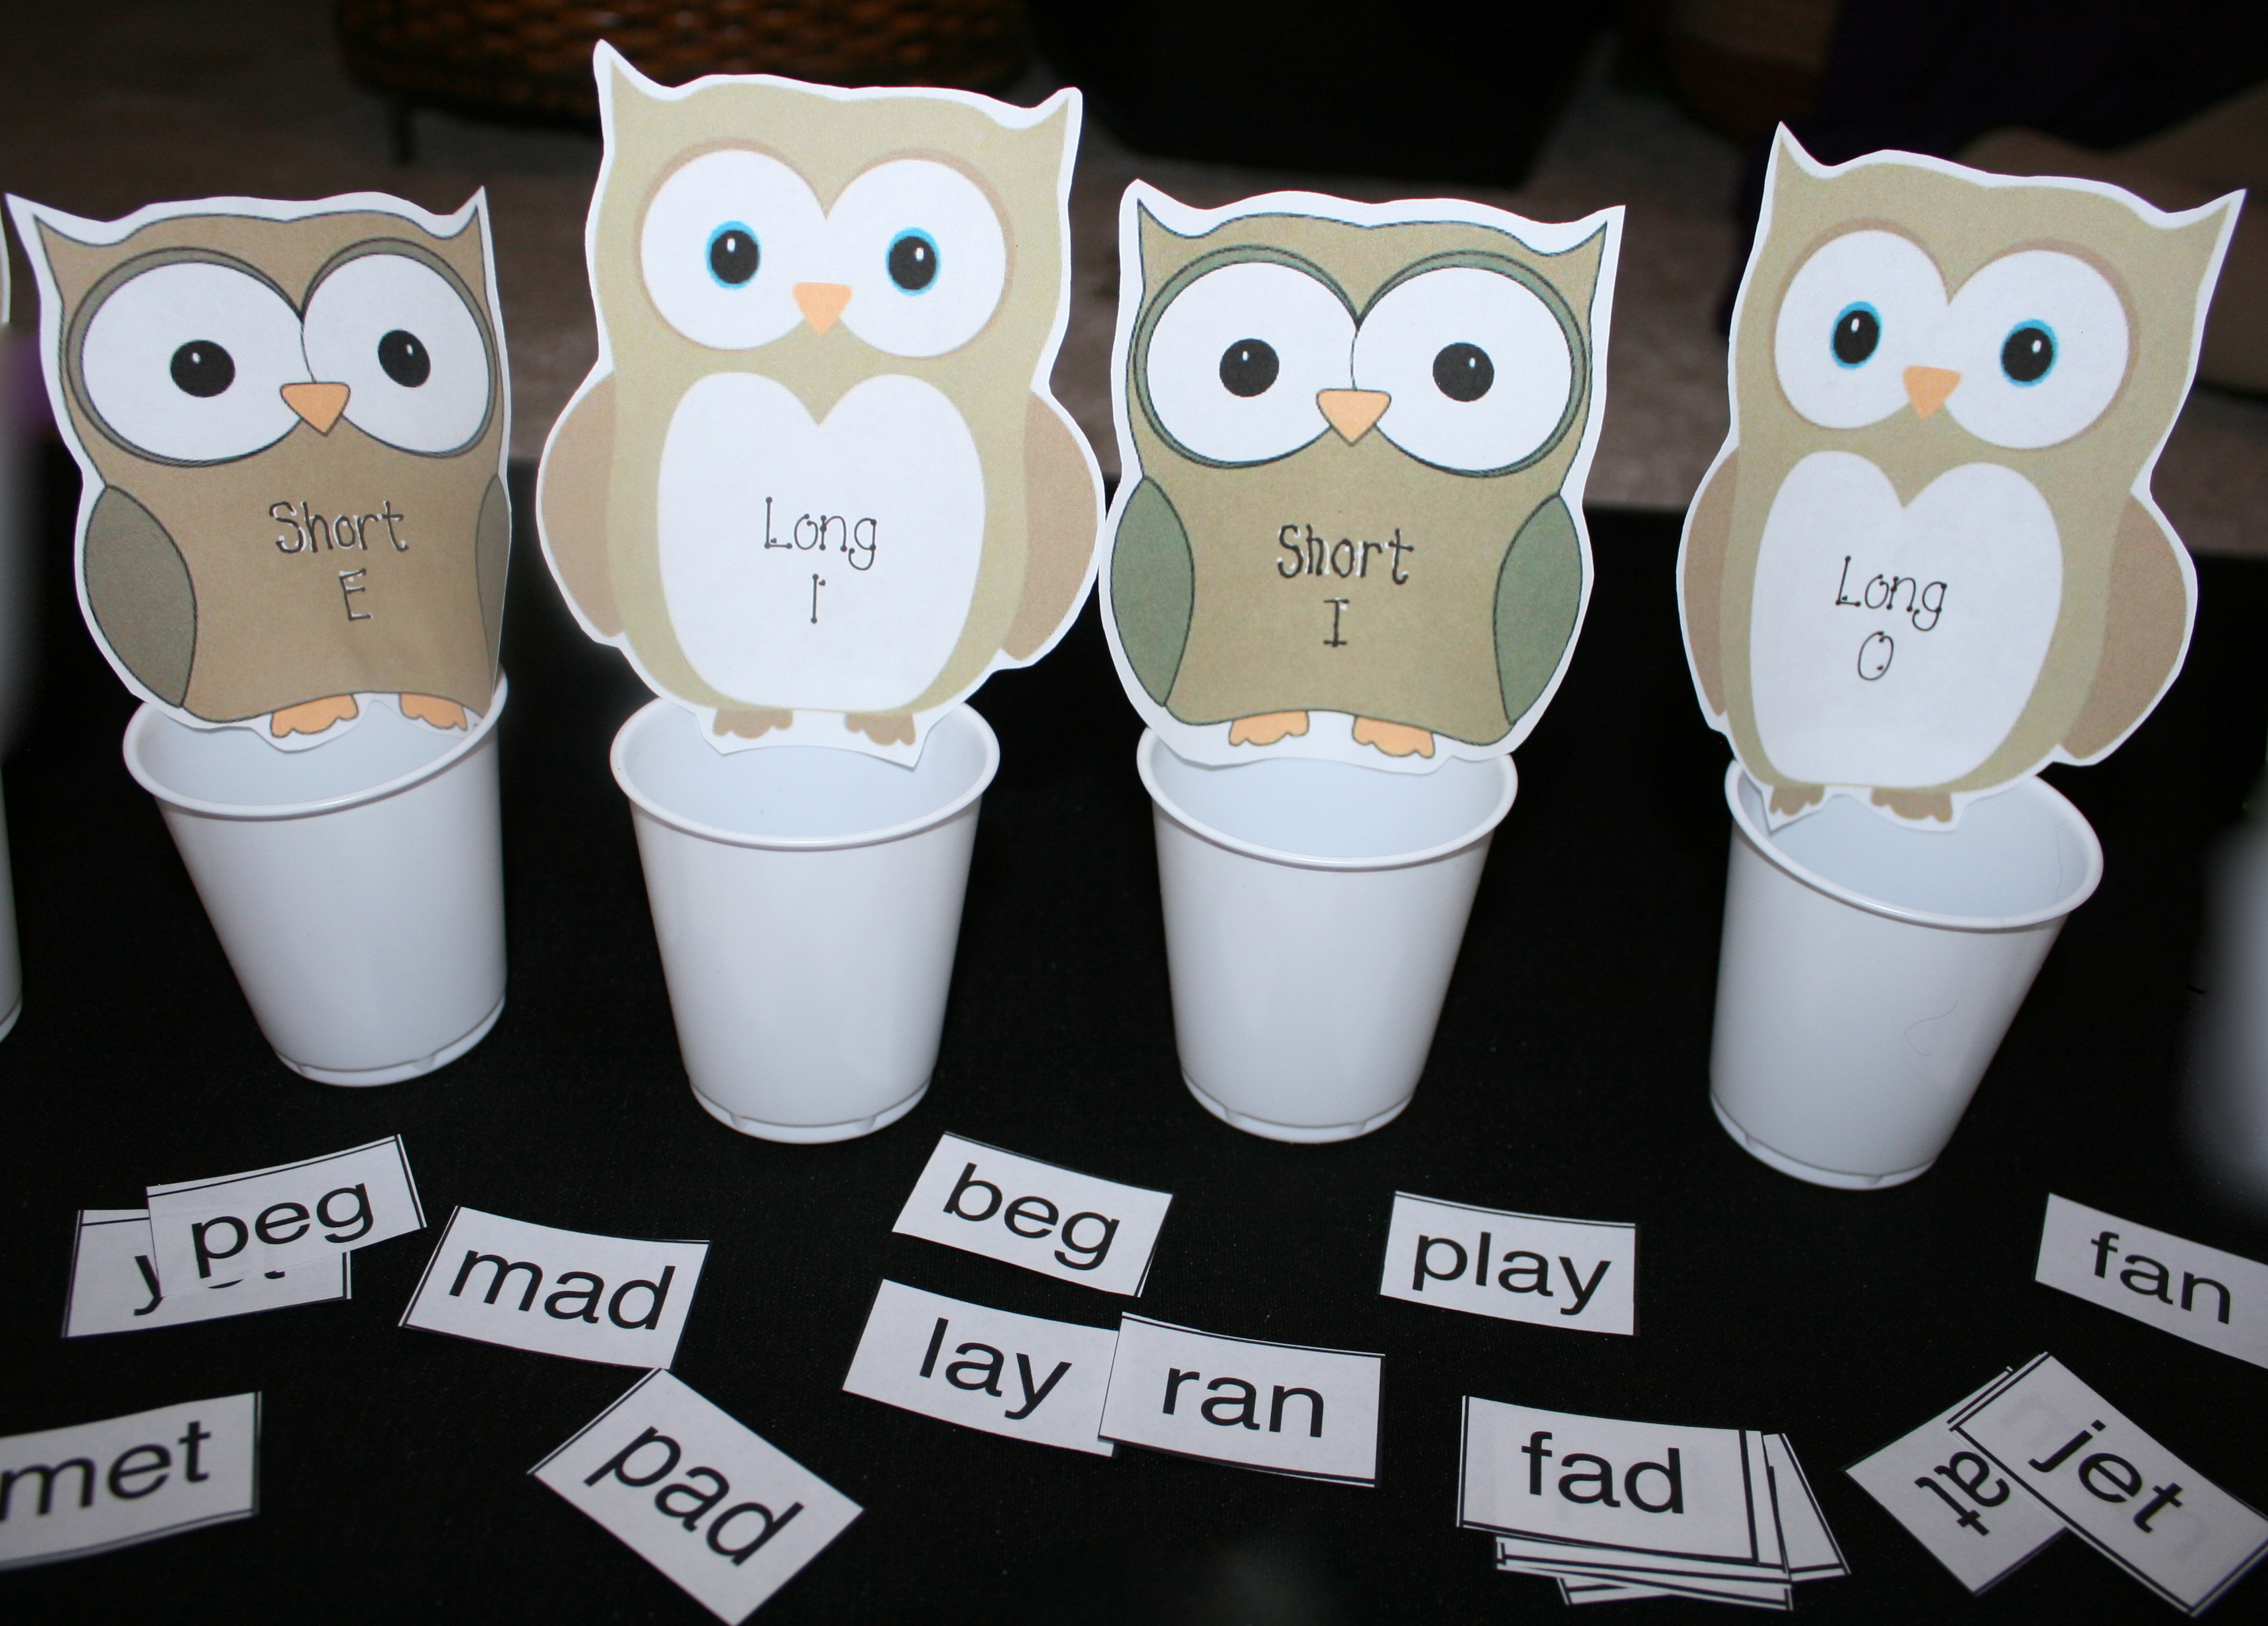 long and short vowel activities, vowel lessons, common core lessons for kindergarten, common core lessons, for 1st grade, daily 5 activities, word work activirties, CVC lessons, Dolch word lessons, Dolch word activities, CVC word activities, CVC games, Dolch Word games, owl activities, word games,